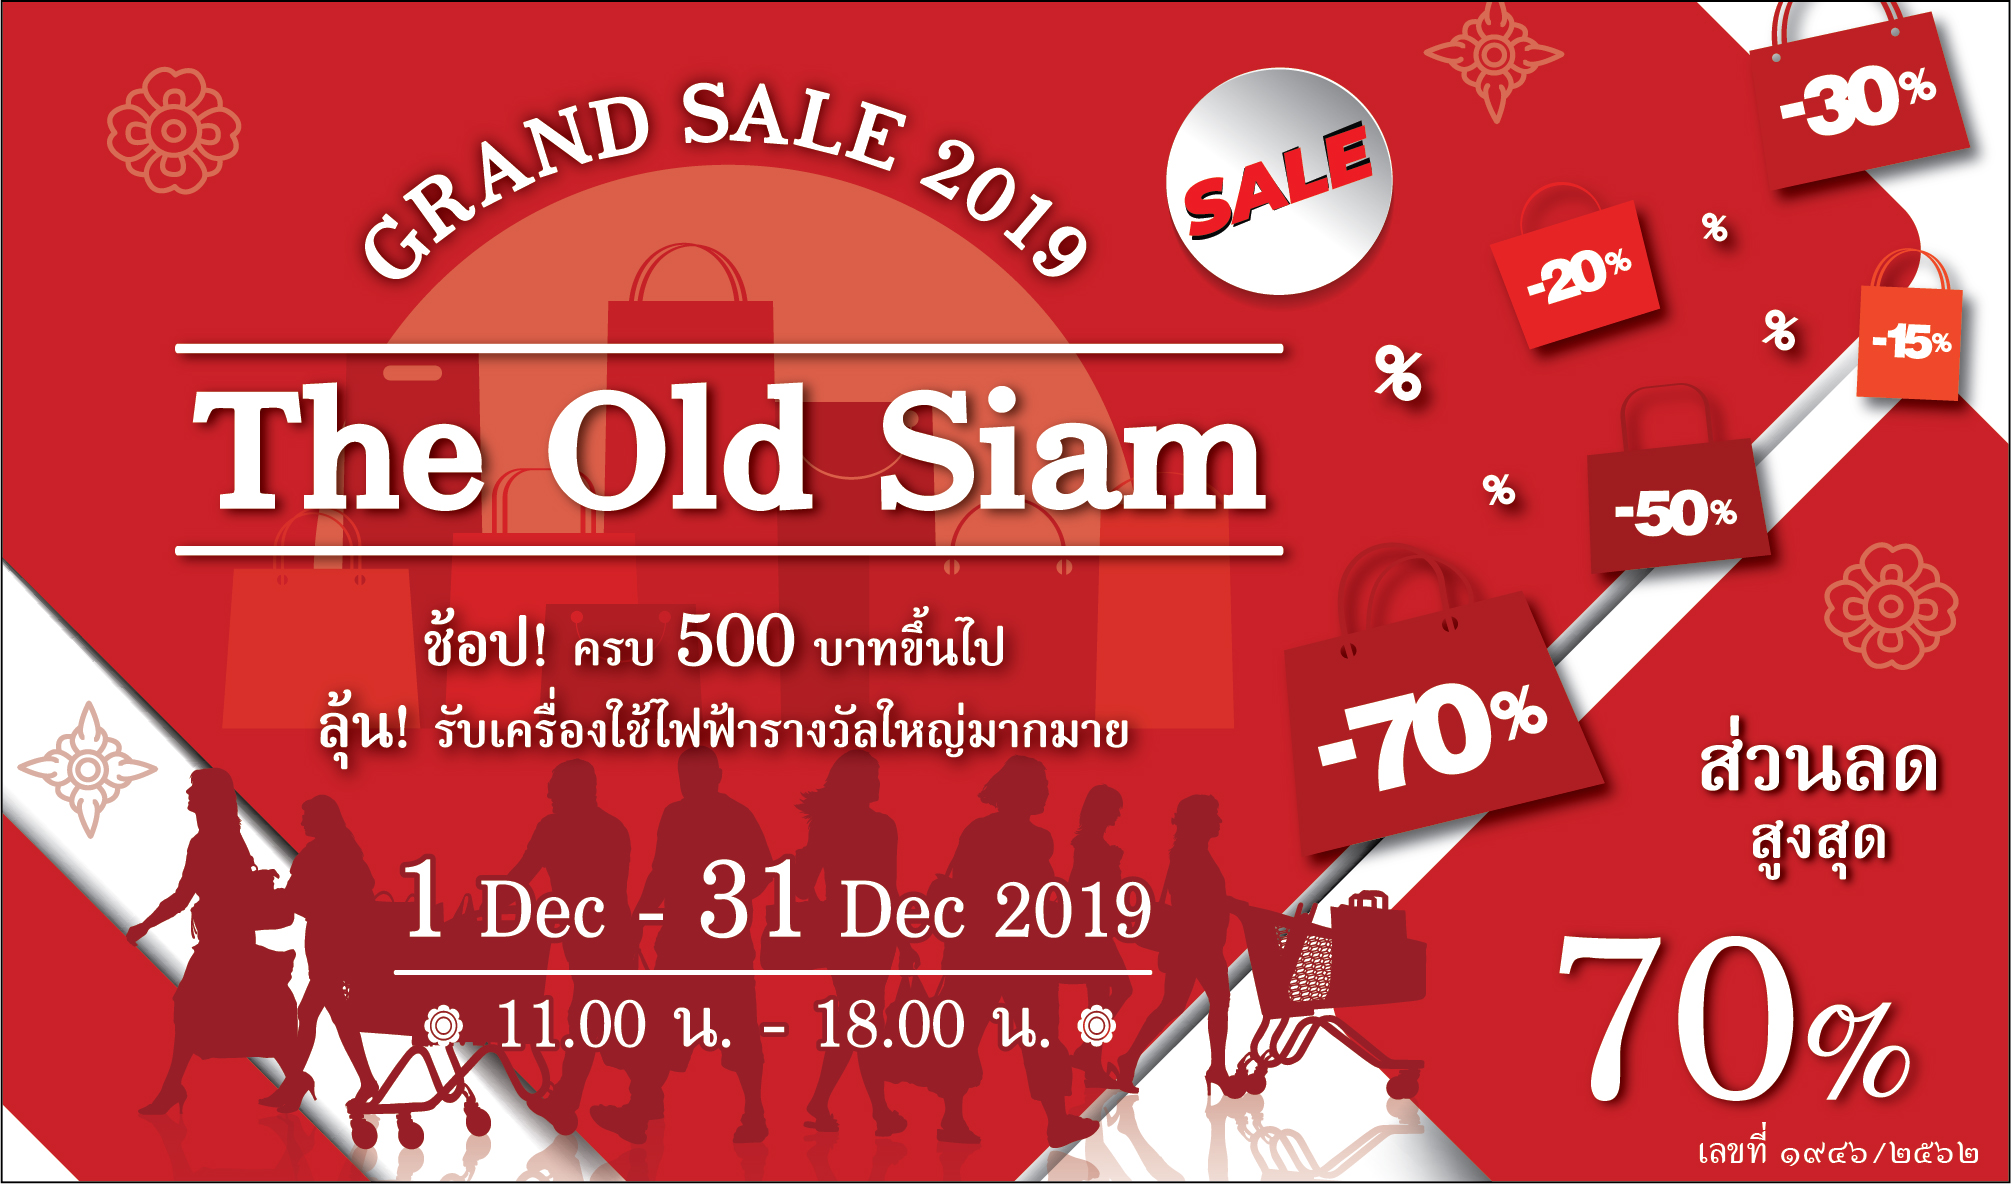 The Old Siam Grand Sale 2019